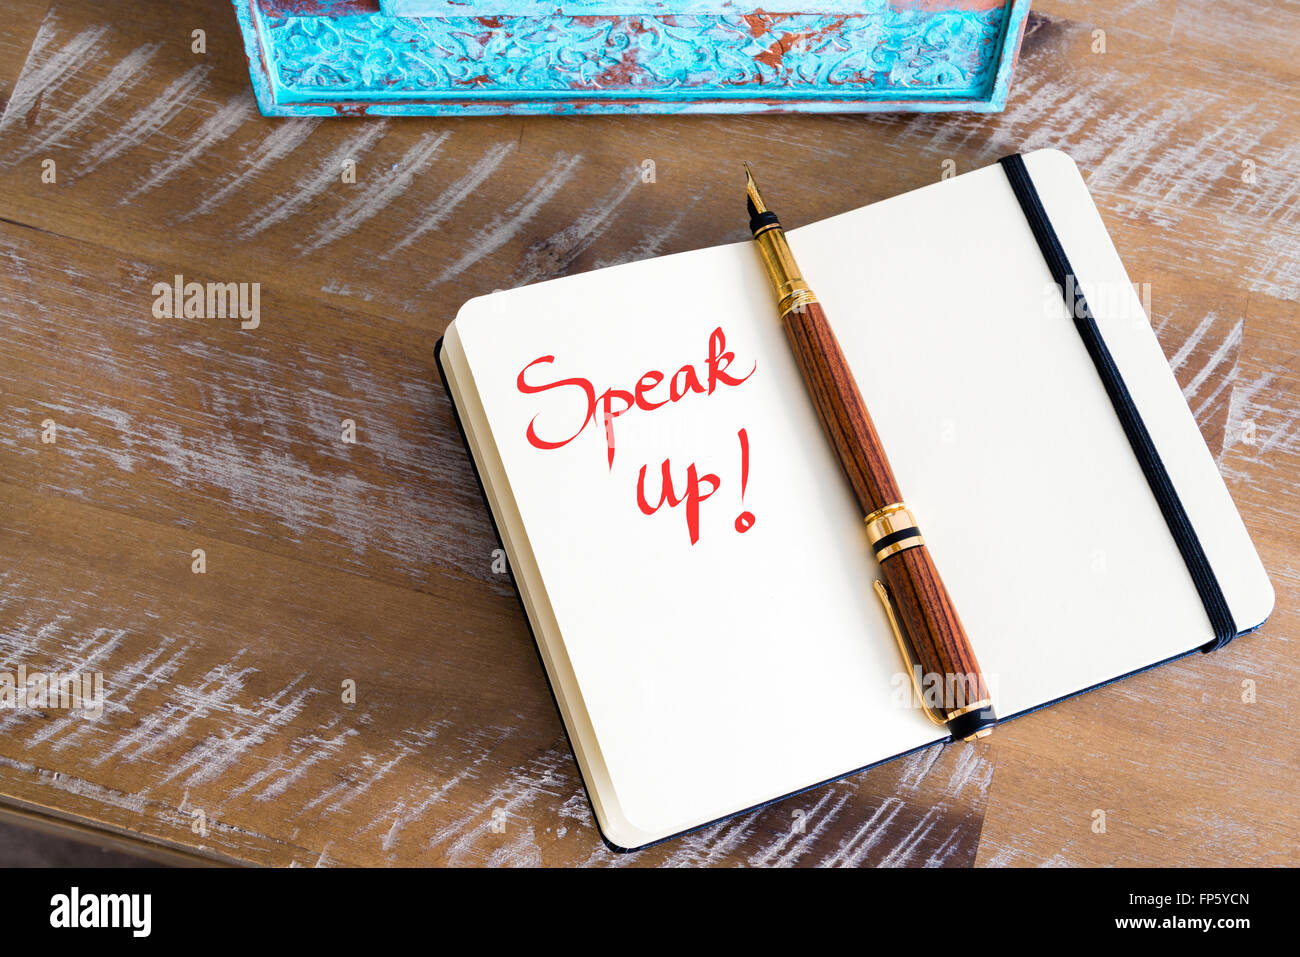 Retro effect and toned image of a fountain pen on a notebook. Handwritten text Speak Up as business concept image - Stock Image